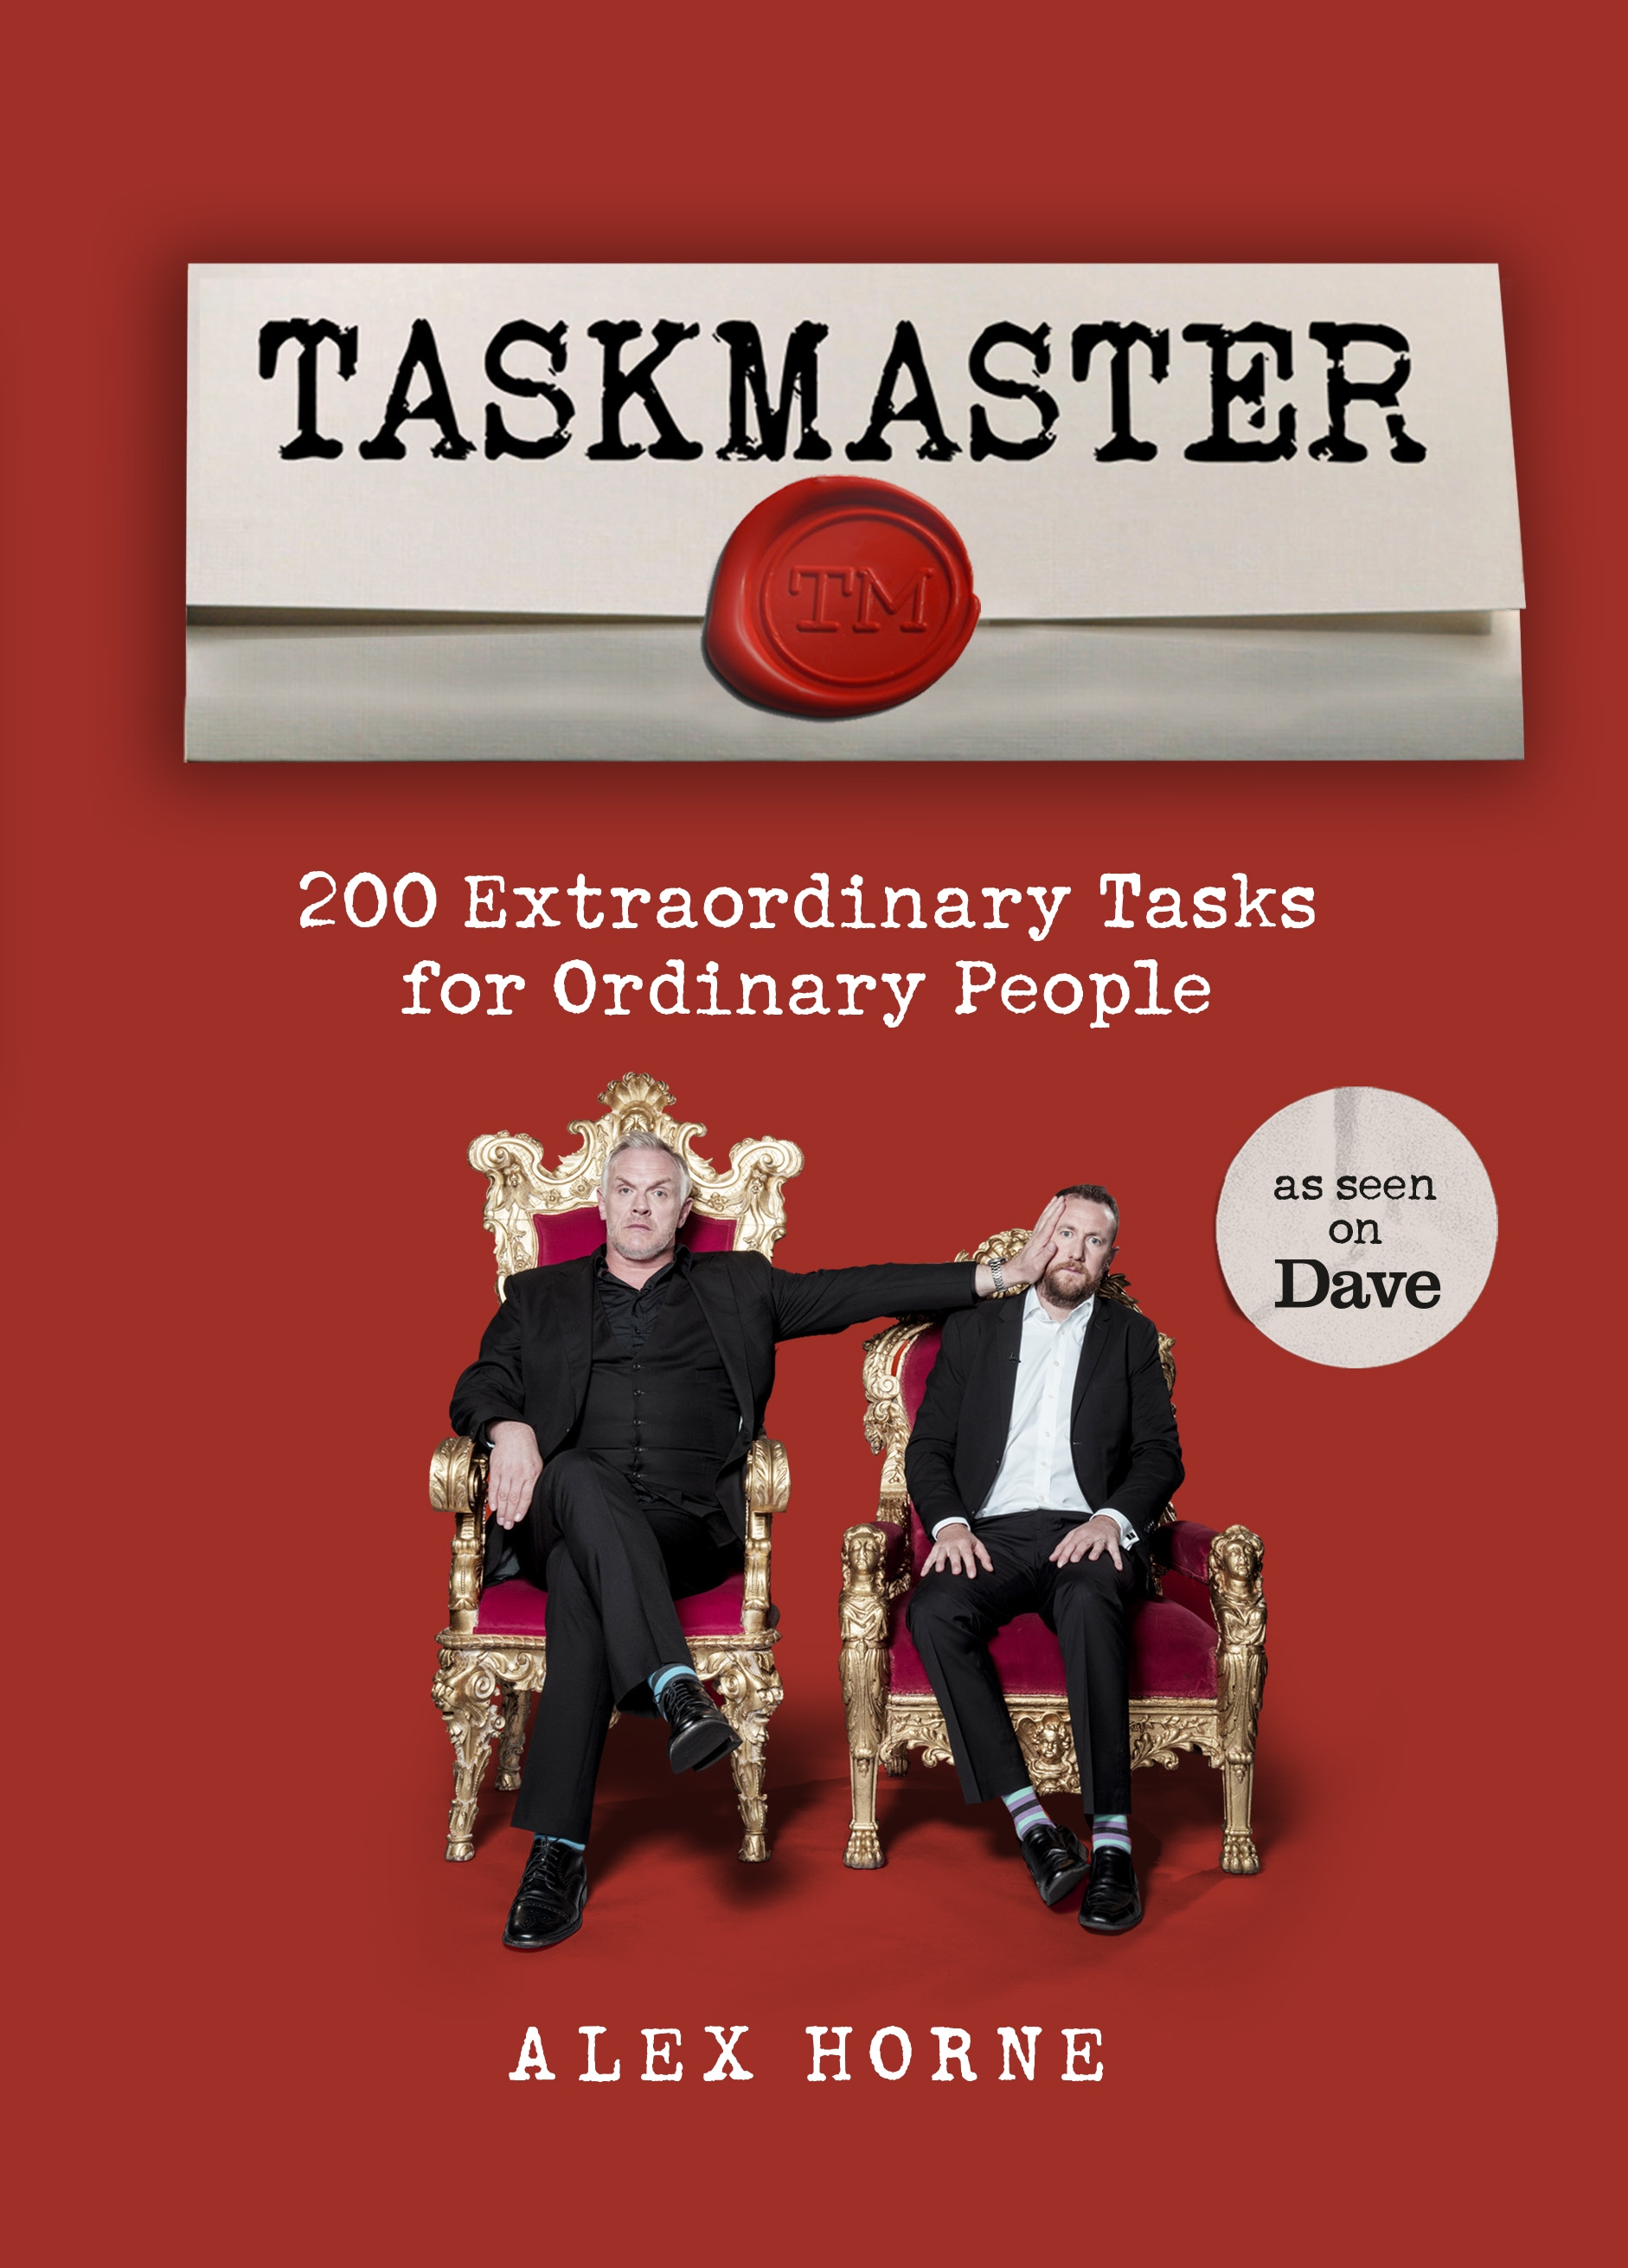 Taskmaster by Alex Horne, ISBN: 9781785943584